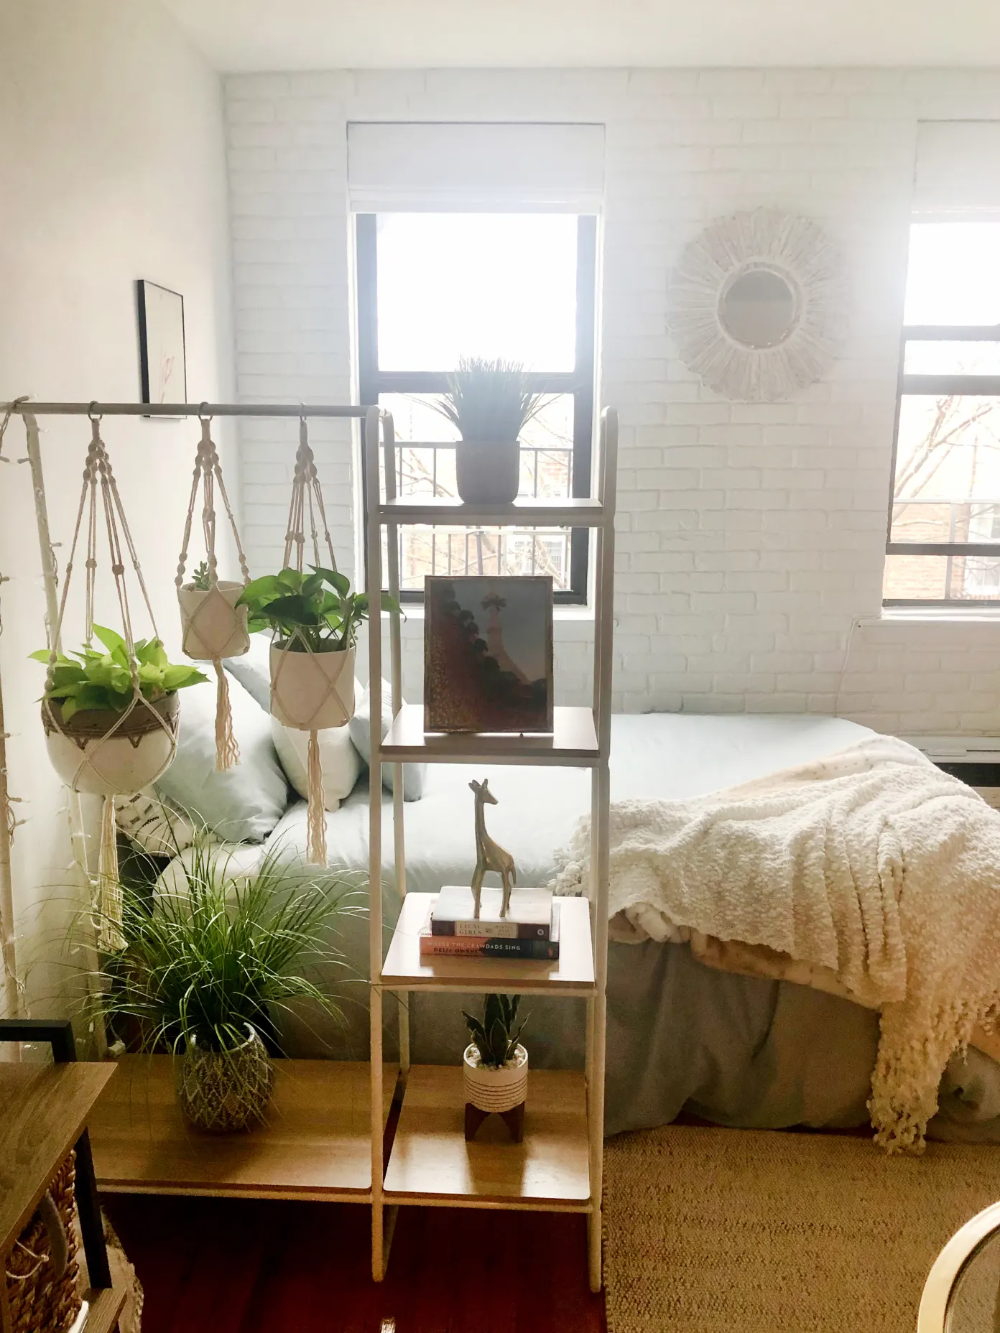 A 350-Square-Foot Studio Apartment Cleverly Repurposes a Clothing Rack as a Room Divider